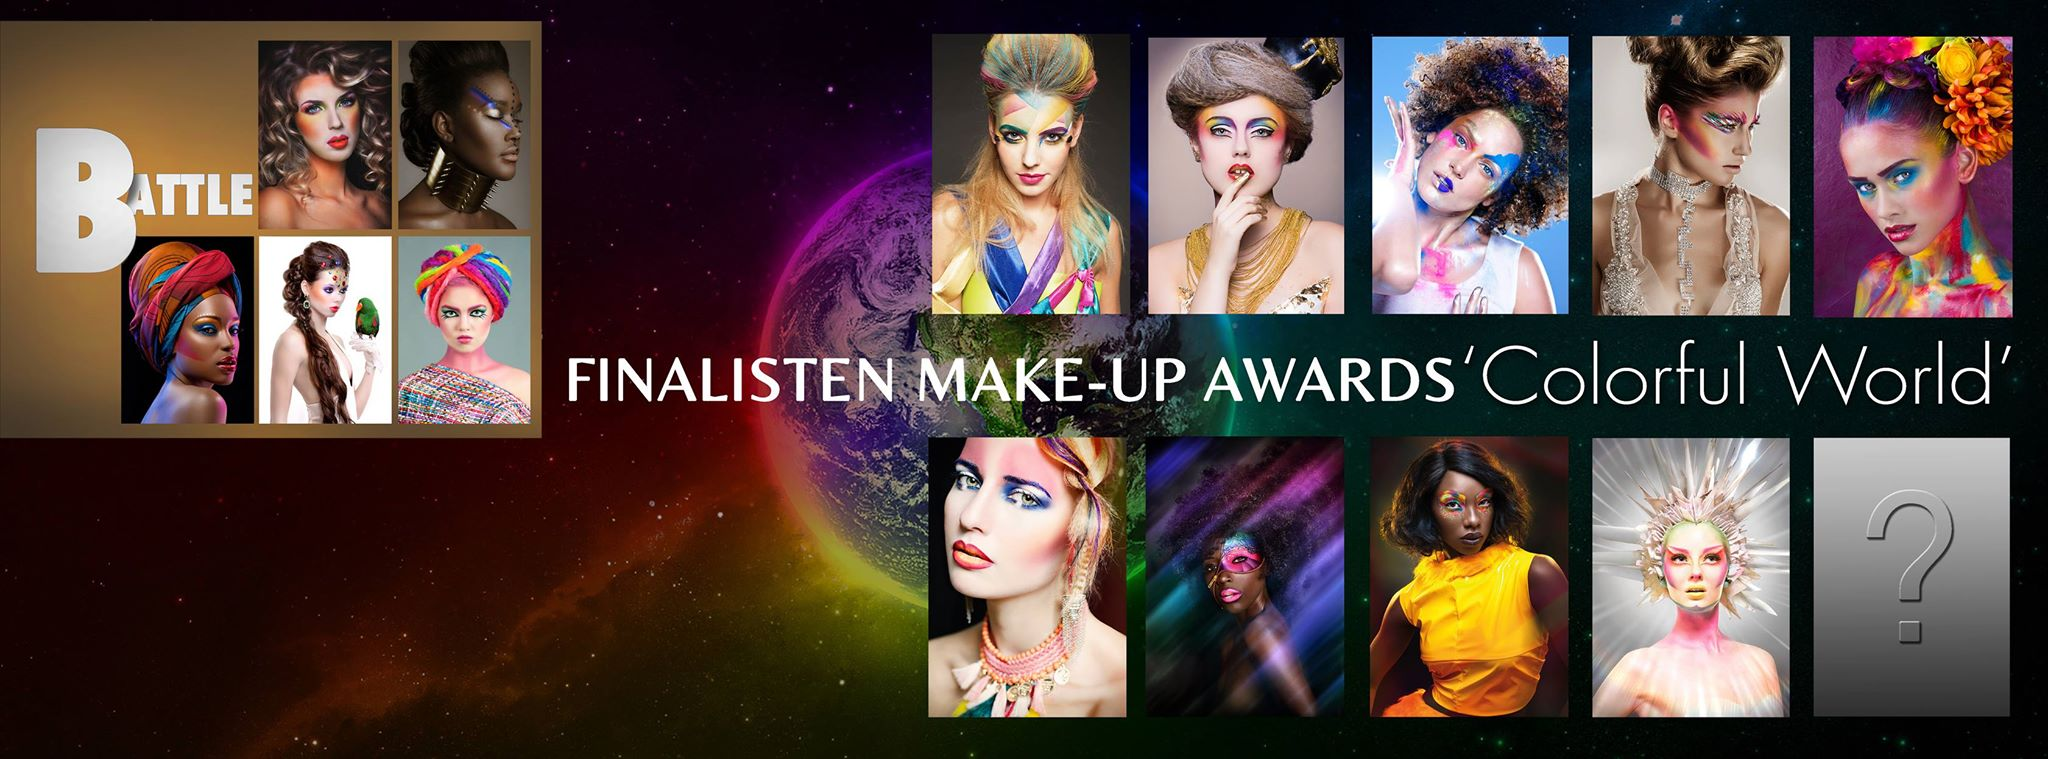 Make up Awards fotoshoot